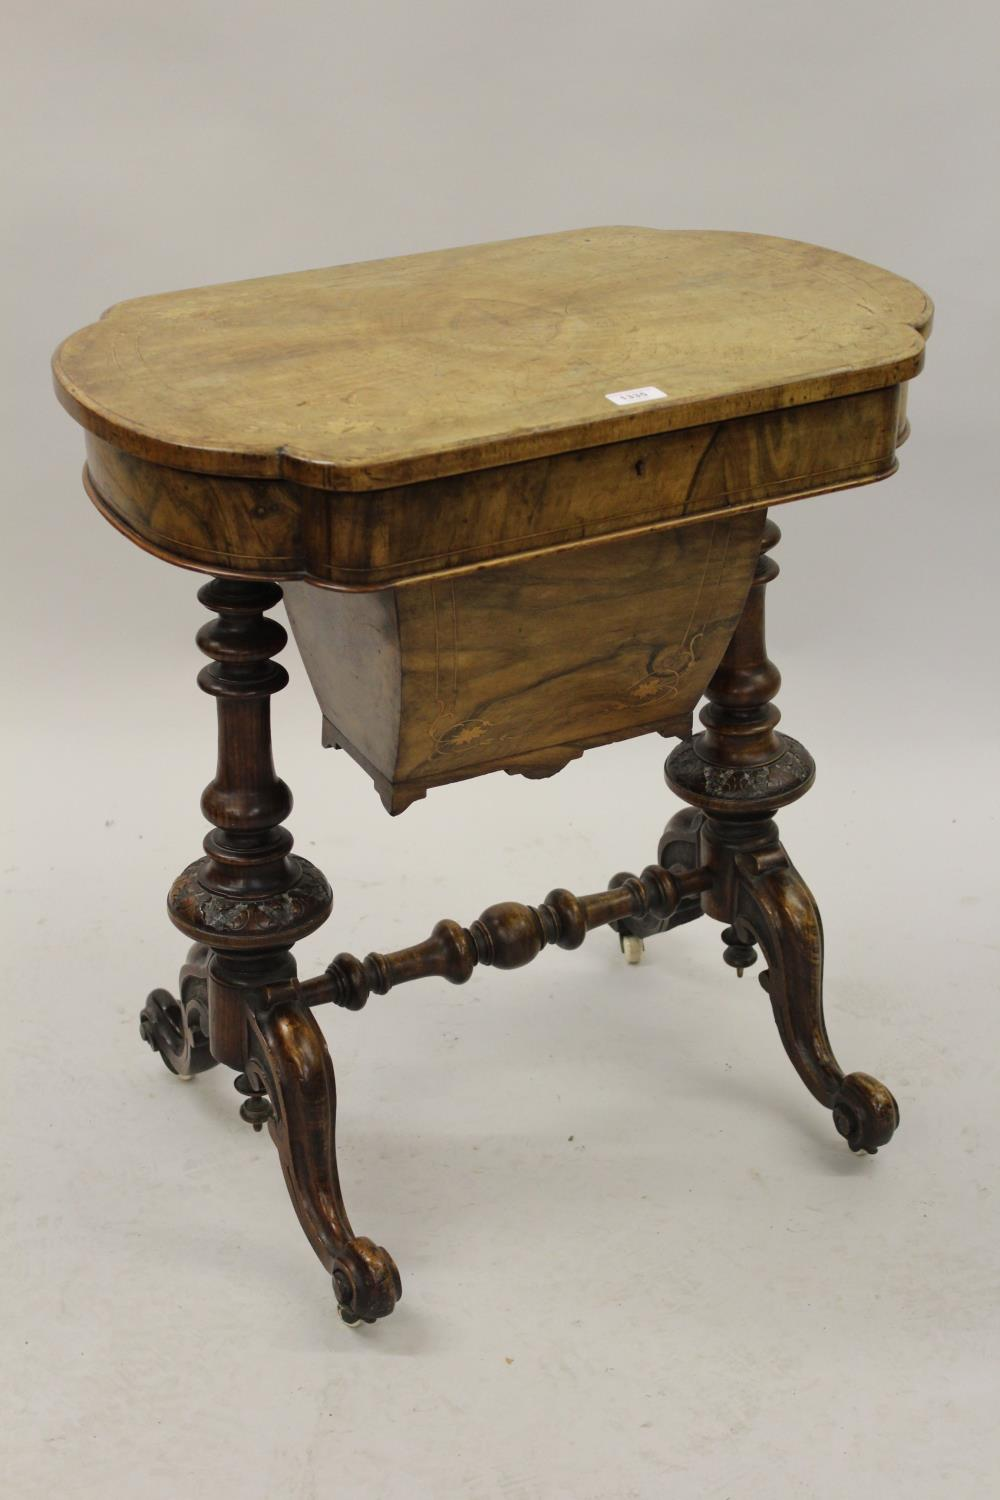 Victorian figured walnut marquetry inlaid work table, the hinged top enclosing a fitted interior and